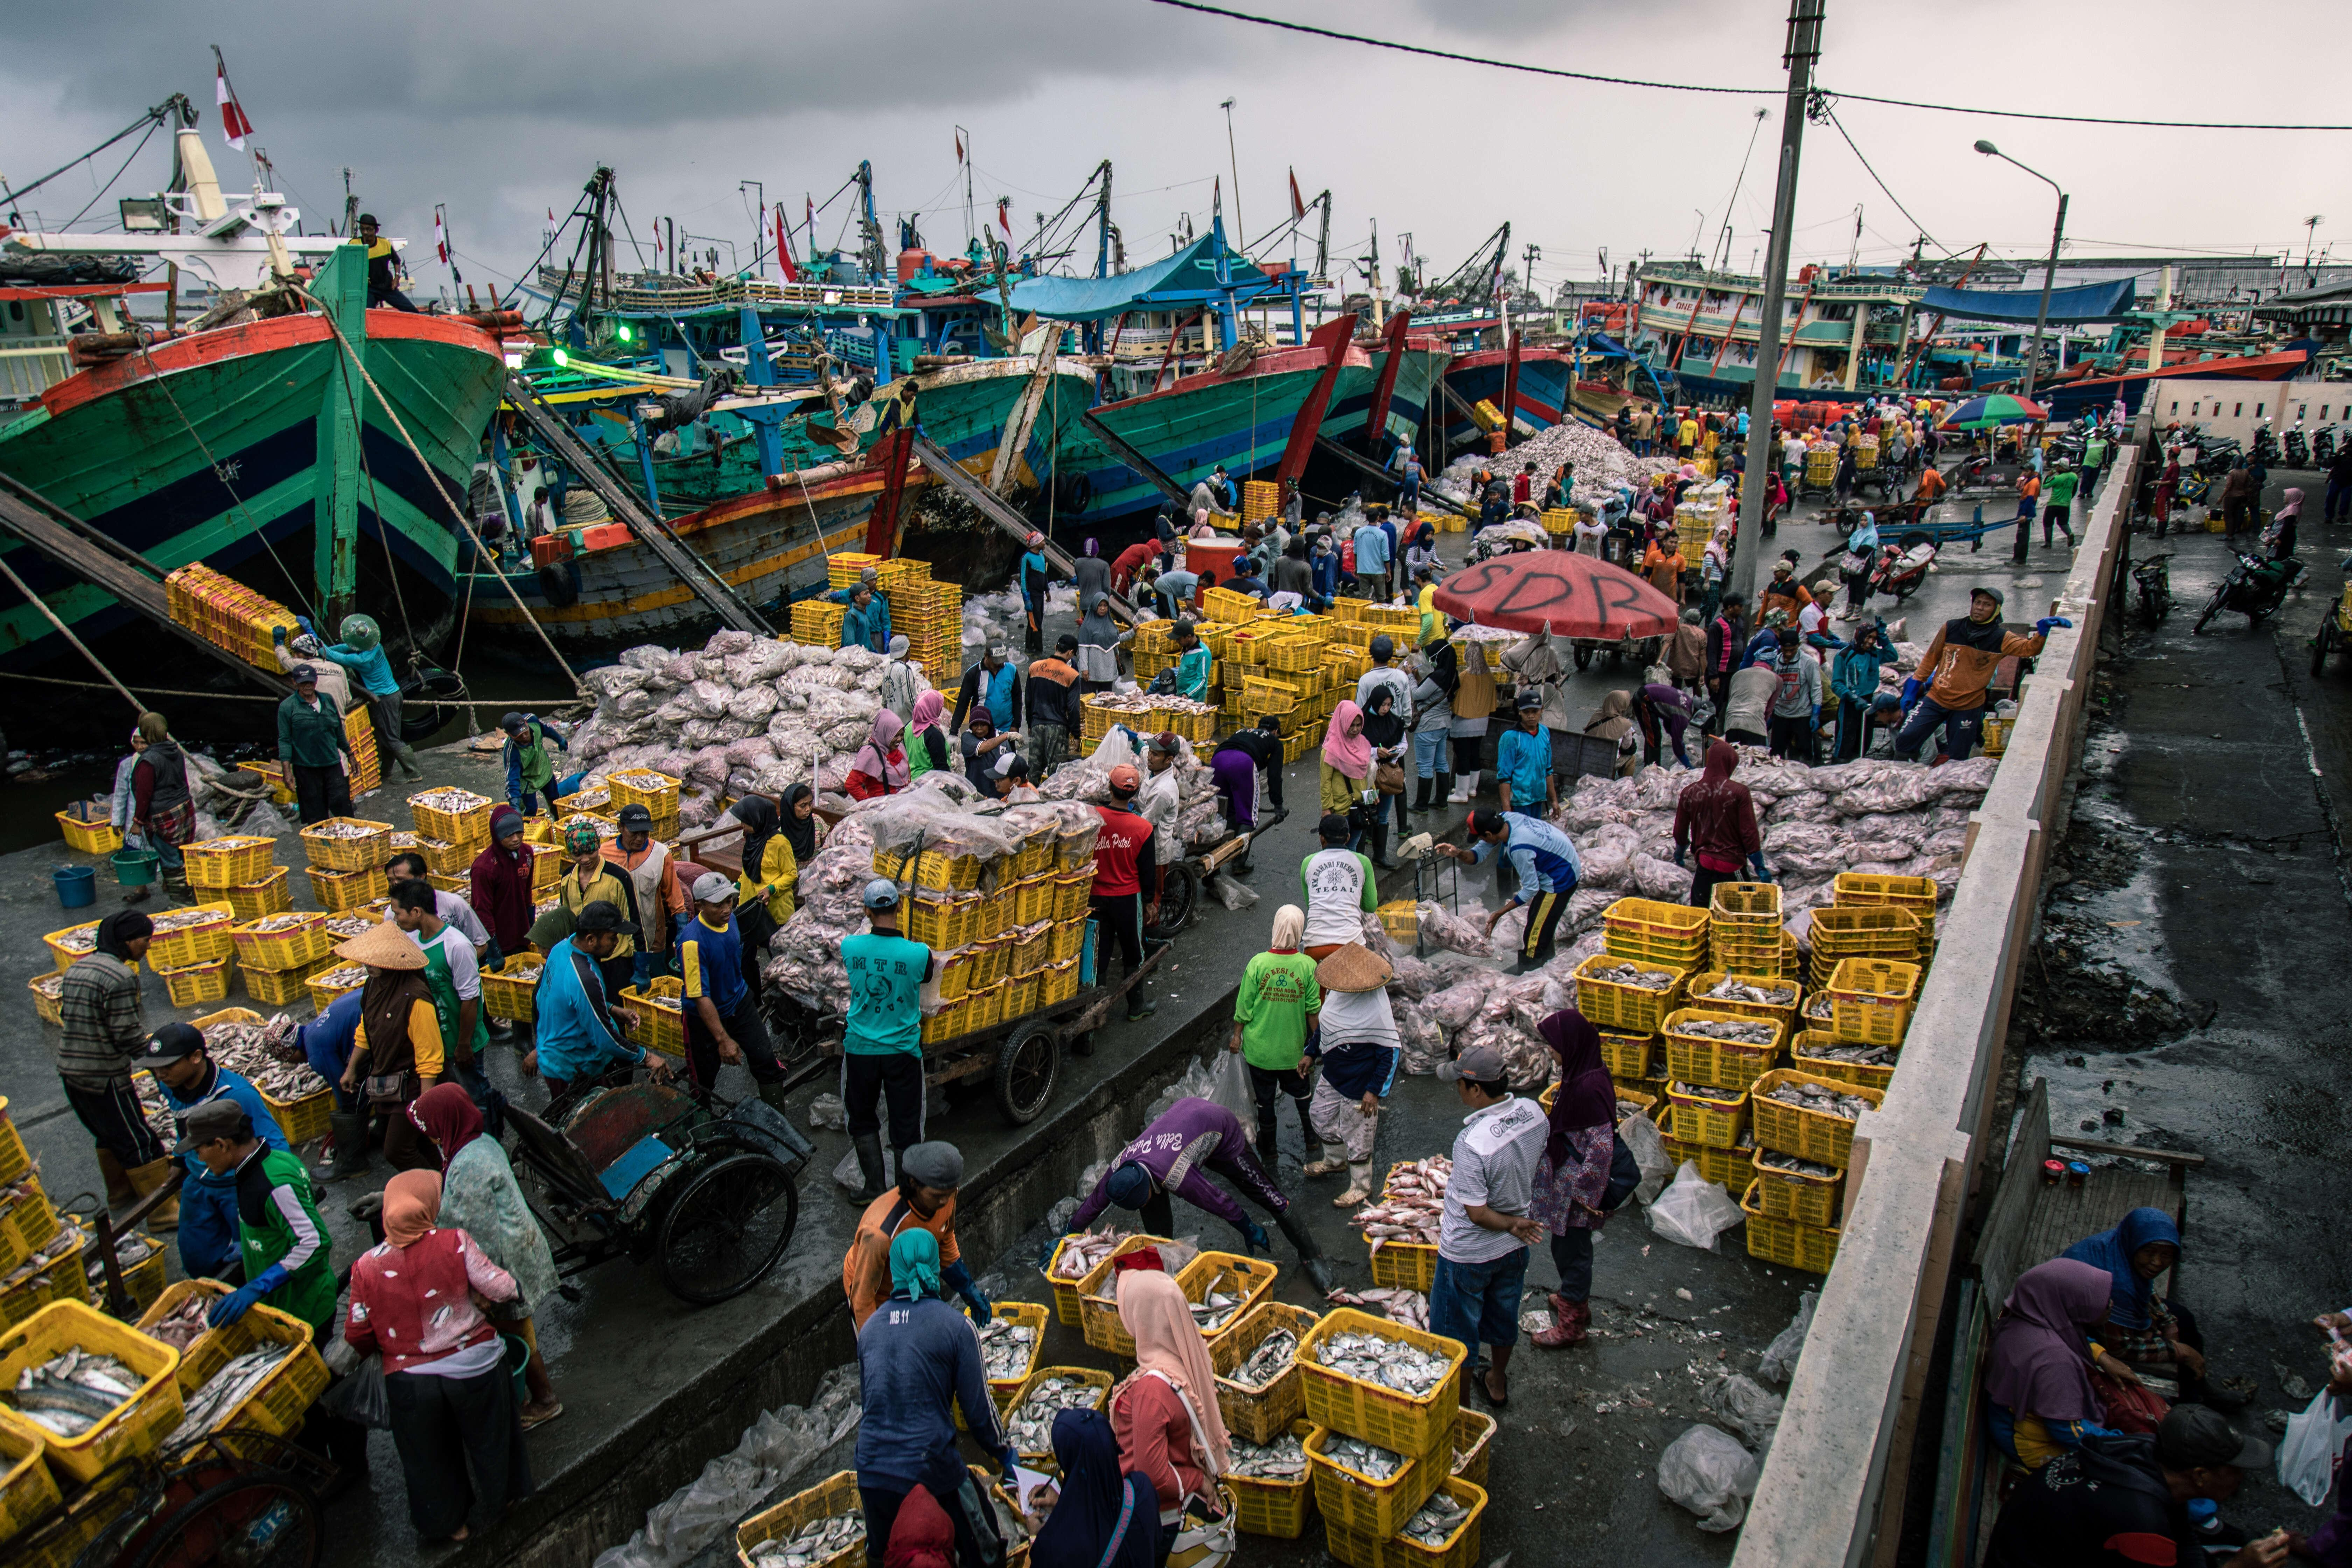 Free due diligence toolkit to help buyers of legal, ethical seafood